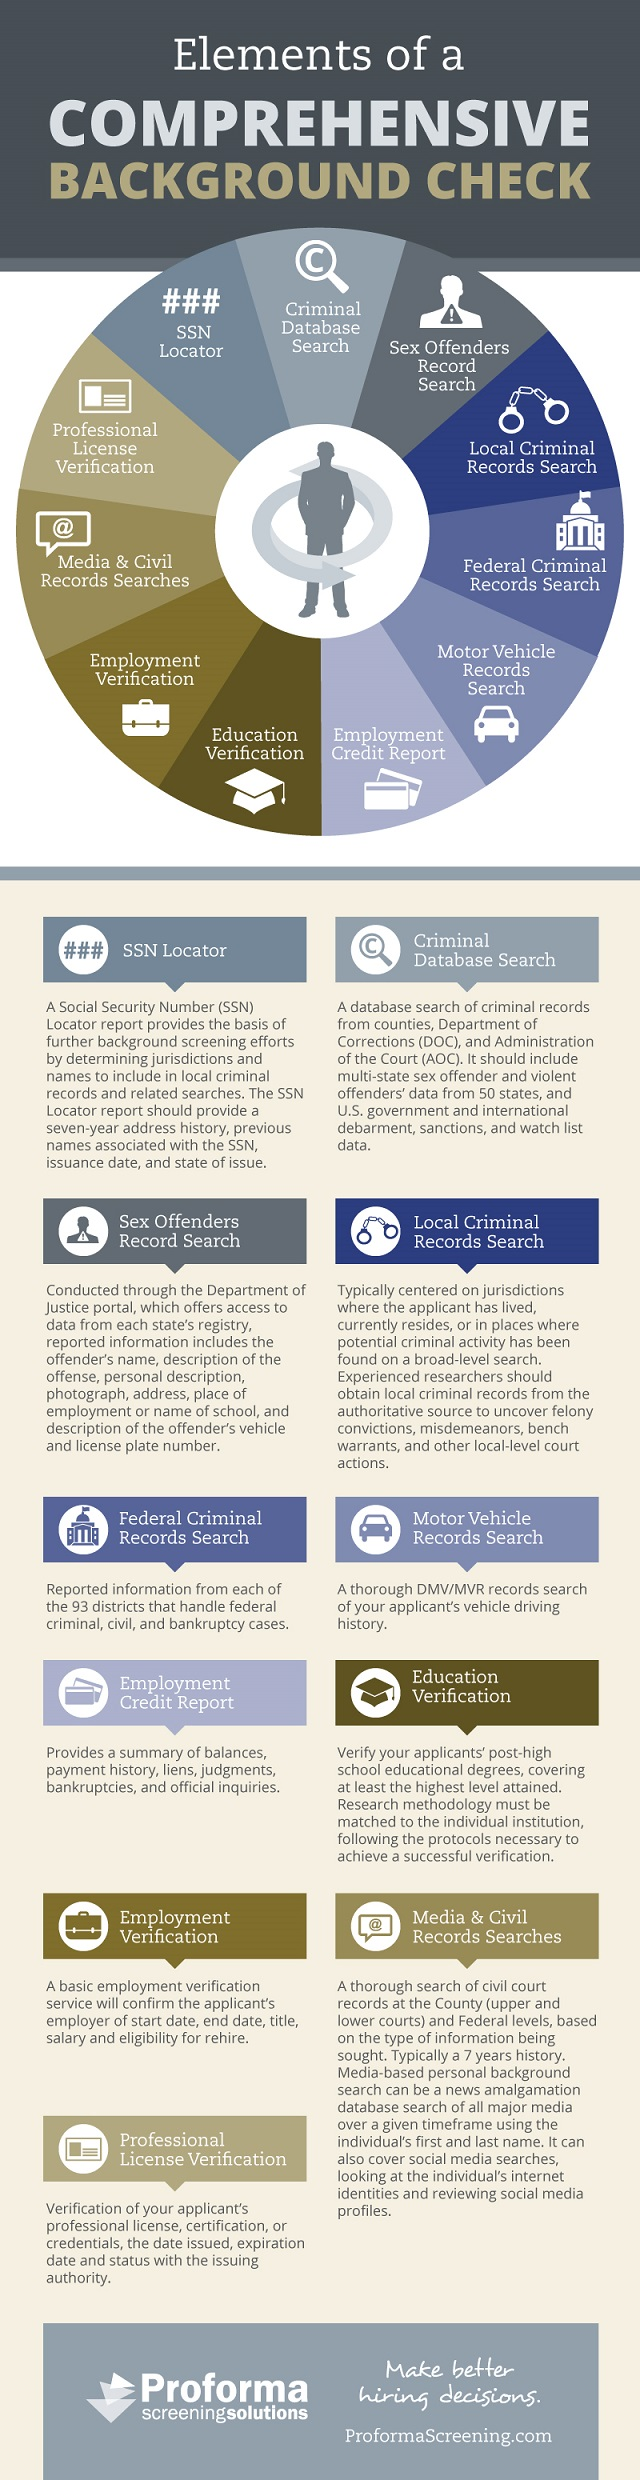 Elements of a Comprehensive Background Check  Infographic  Background Check Process Infographic